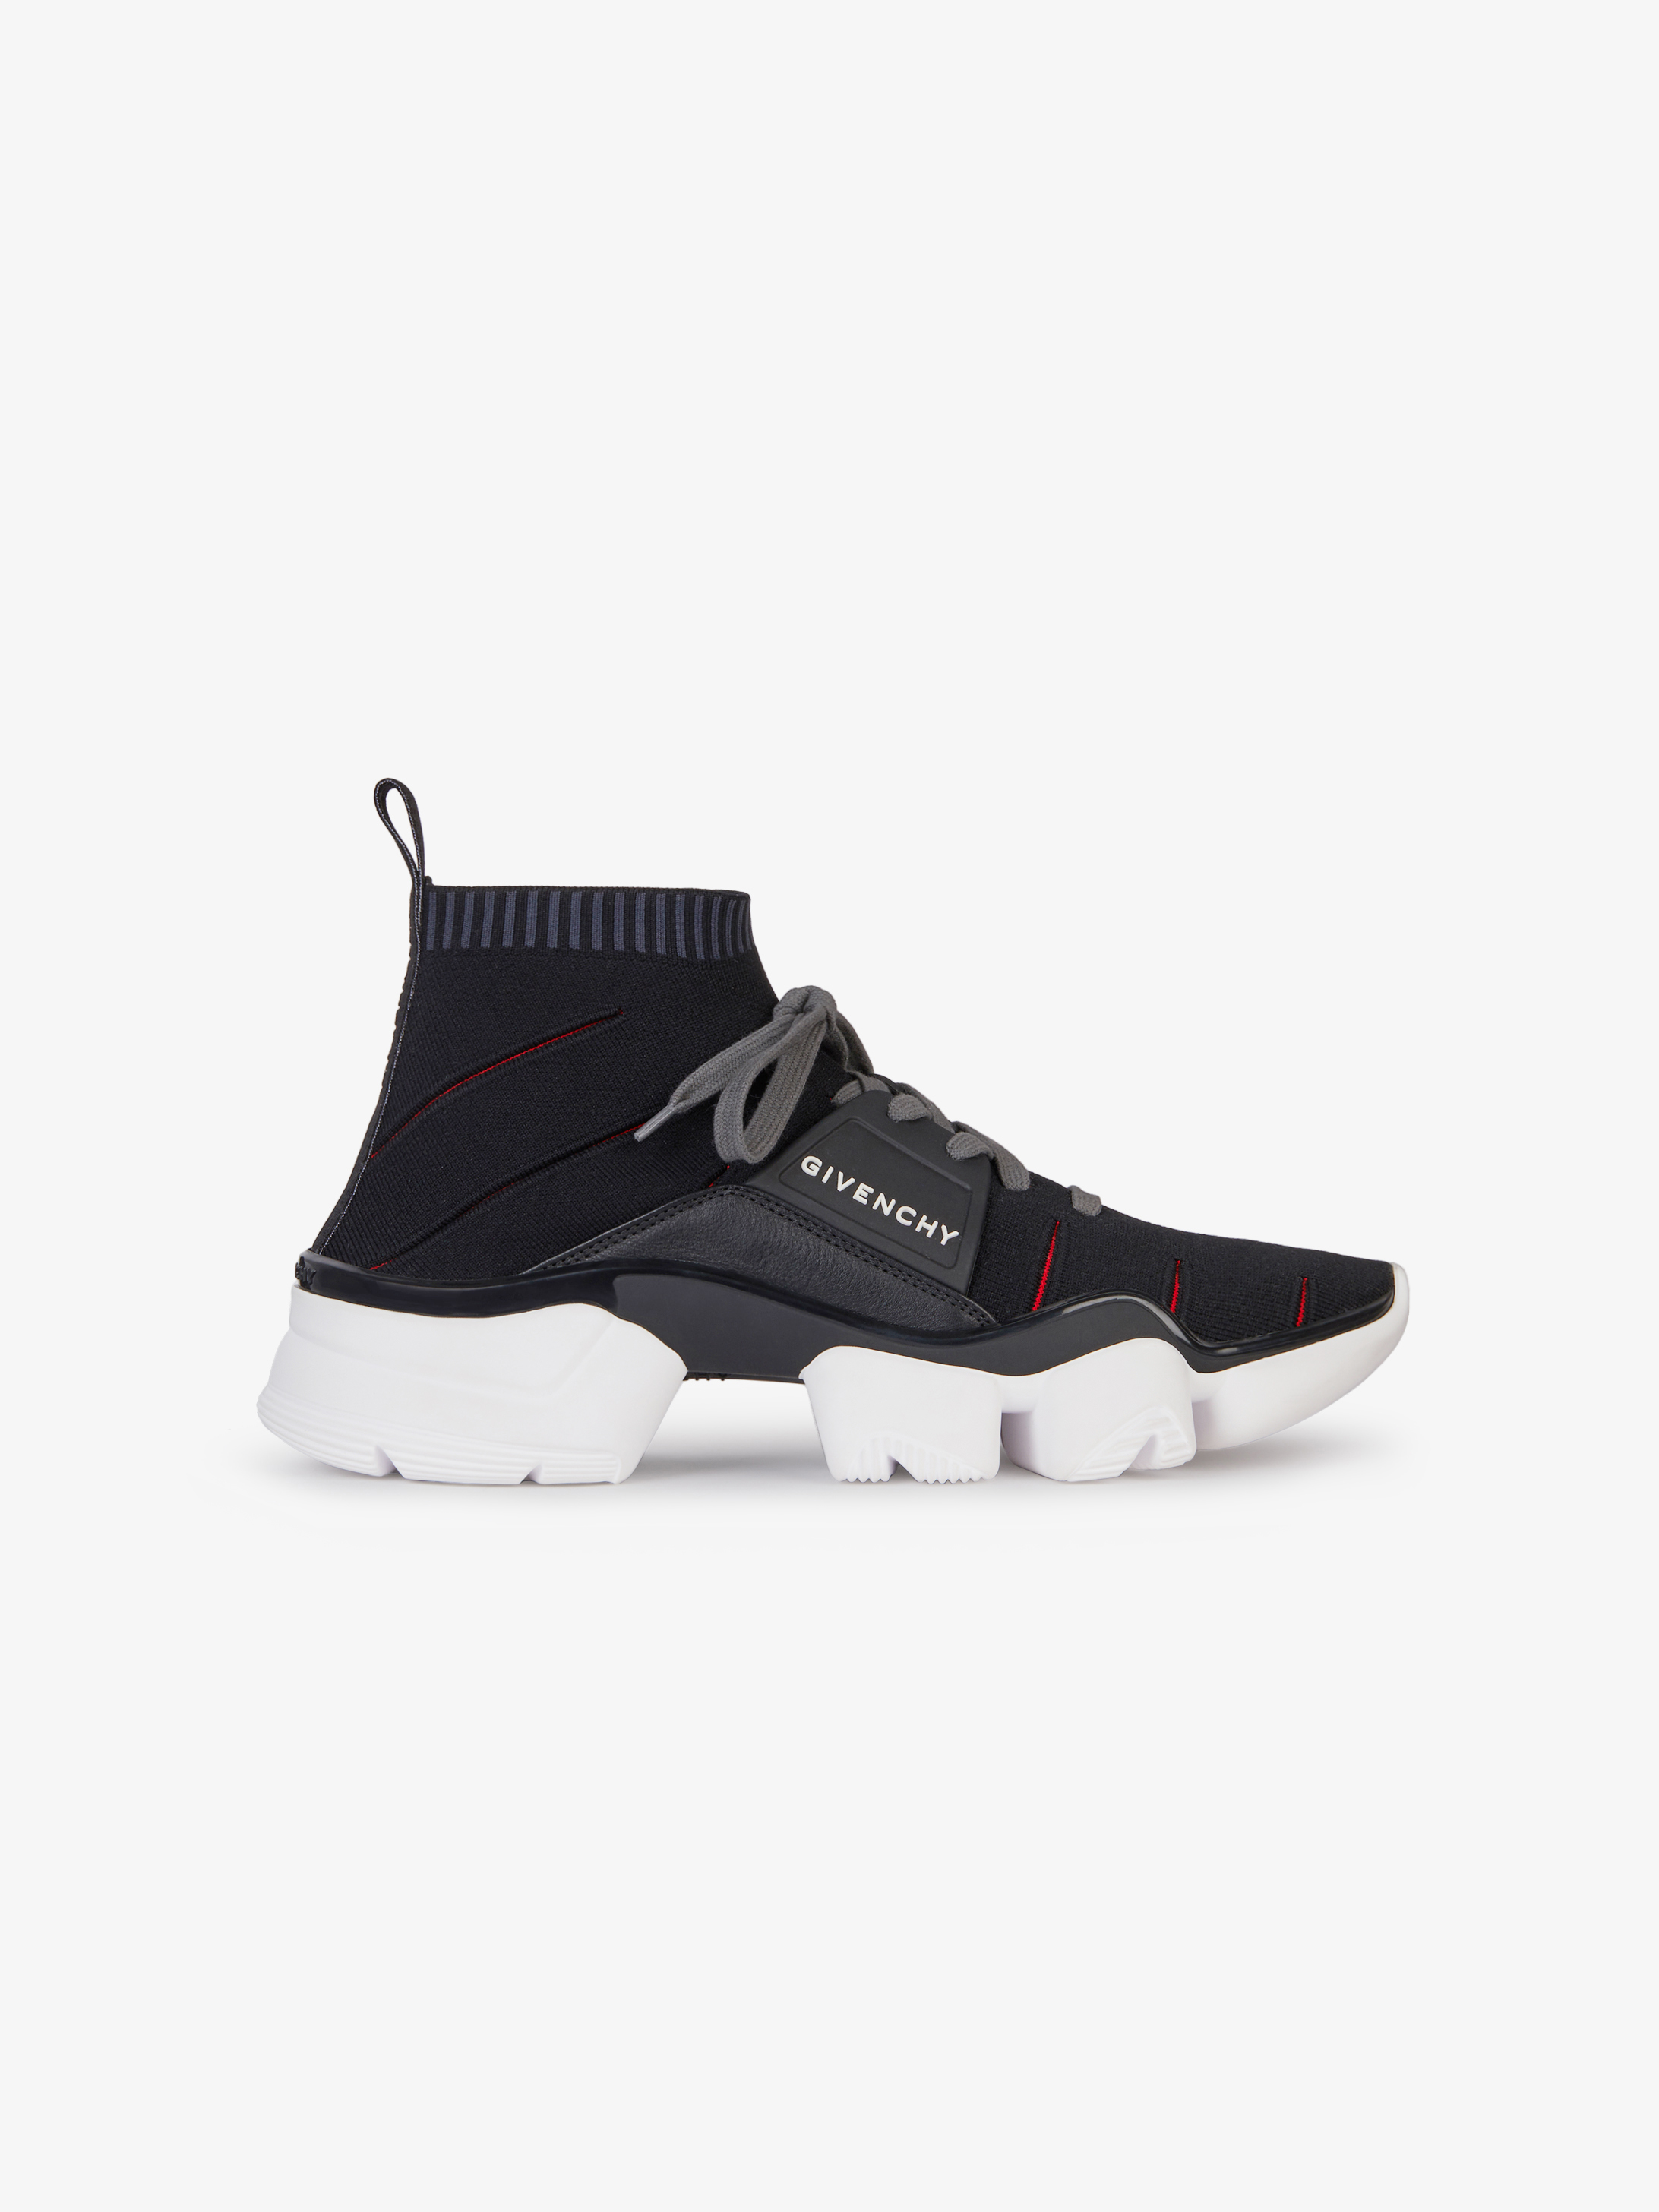 Jaw mid-height knitted sneakers with contrasted cuts out